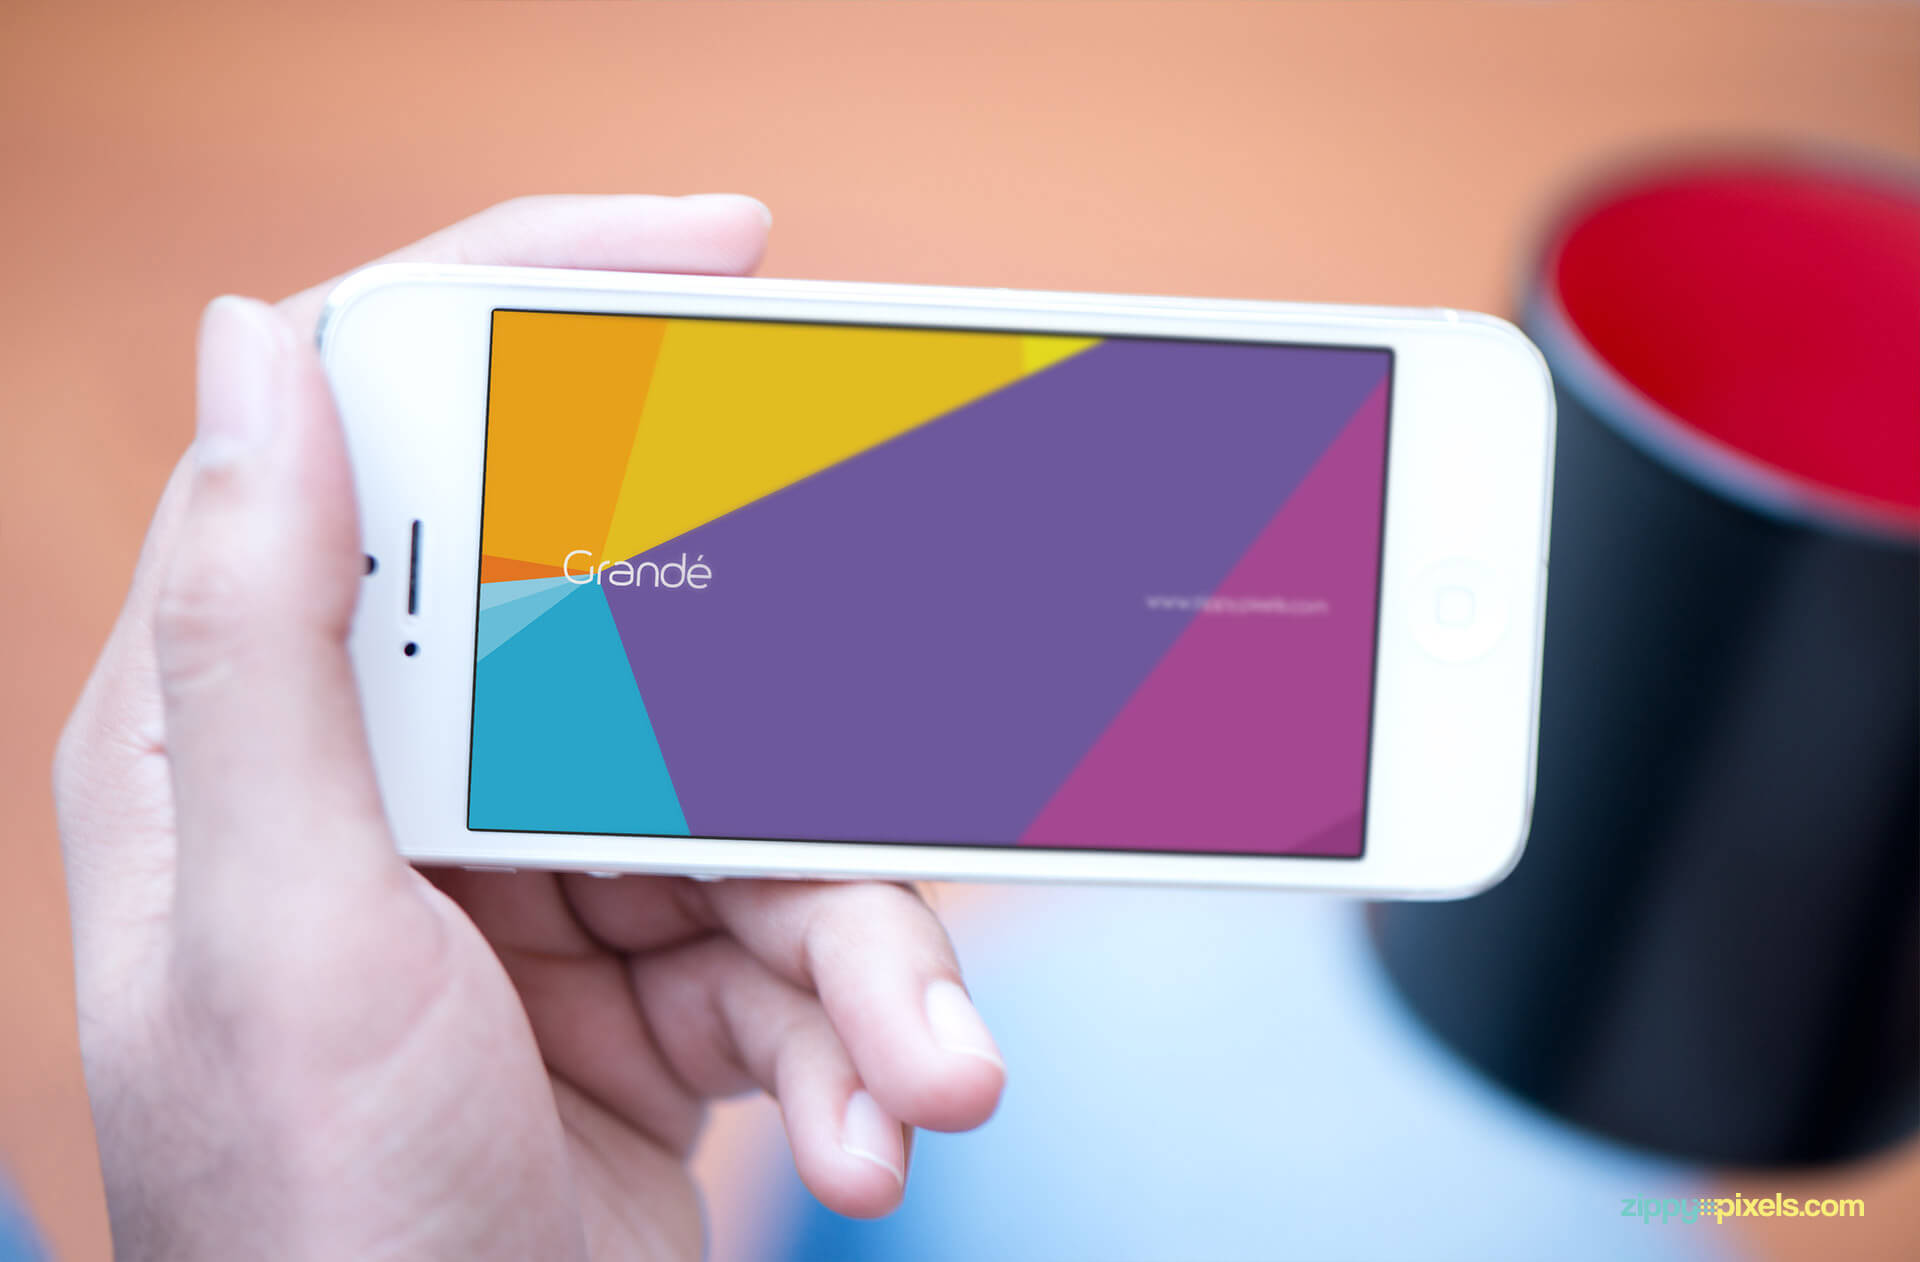 Device Mockup of iPhone Held in Hand in Landscape